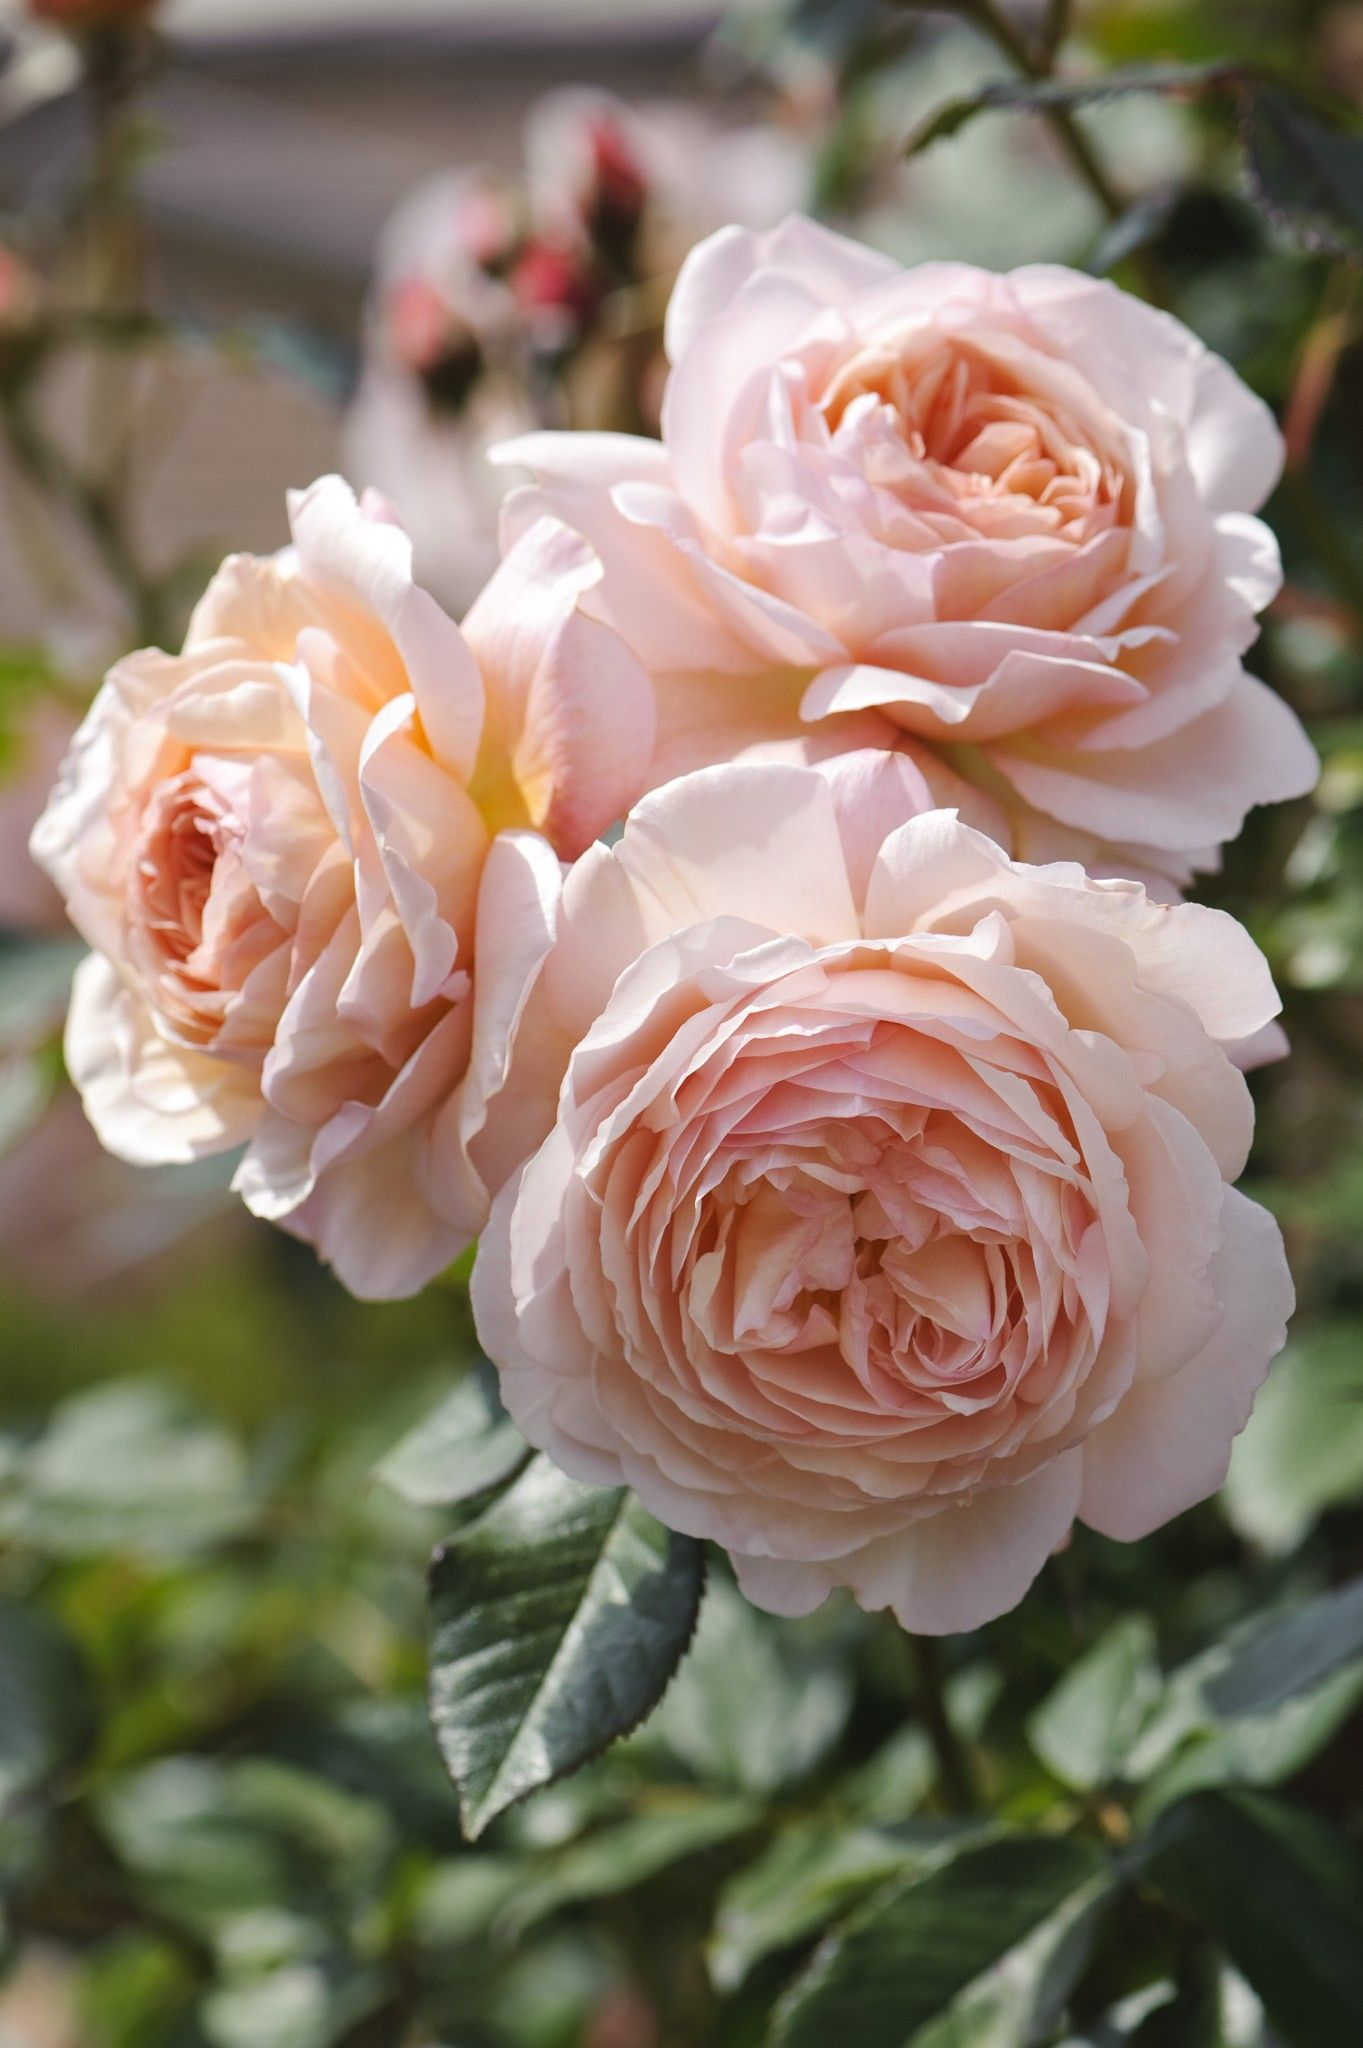 a shropshire lad rose david austin considering this climber for next year garden. Black Bedroom Furniture Sets. Home Design Ideas